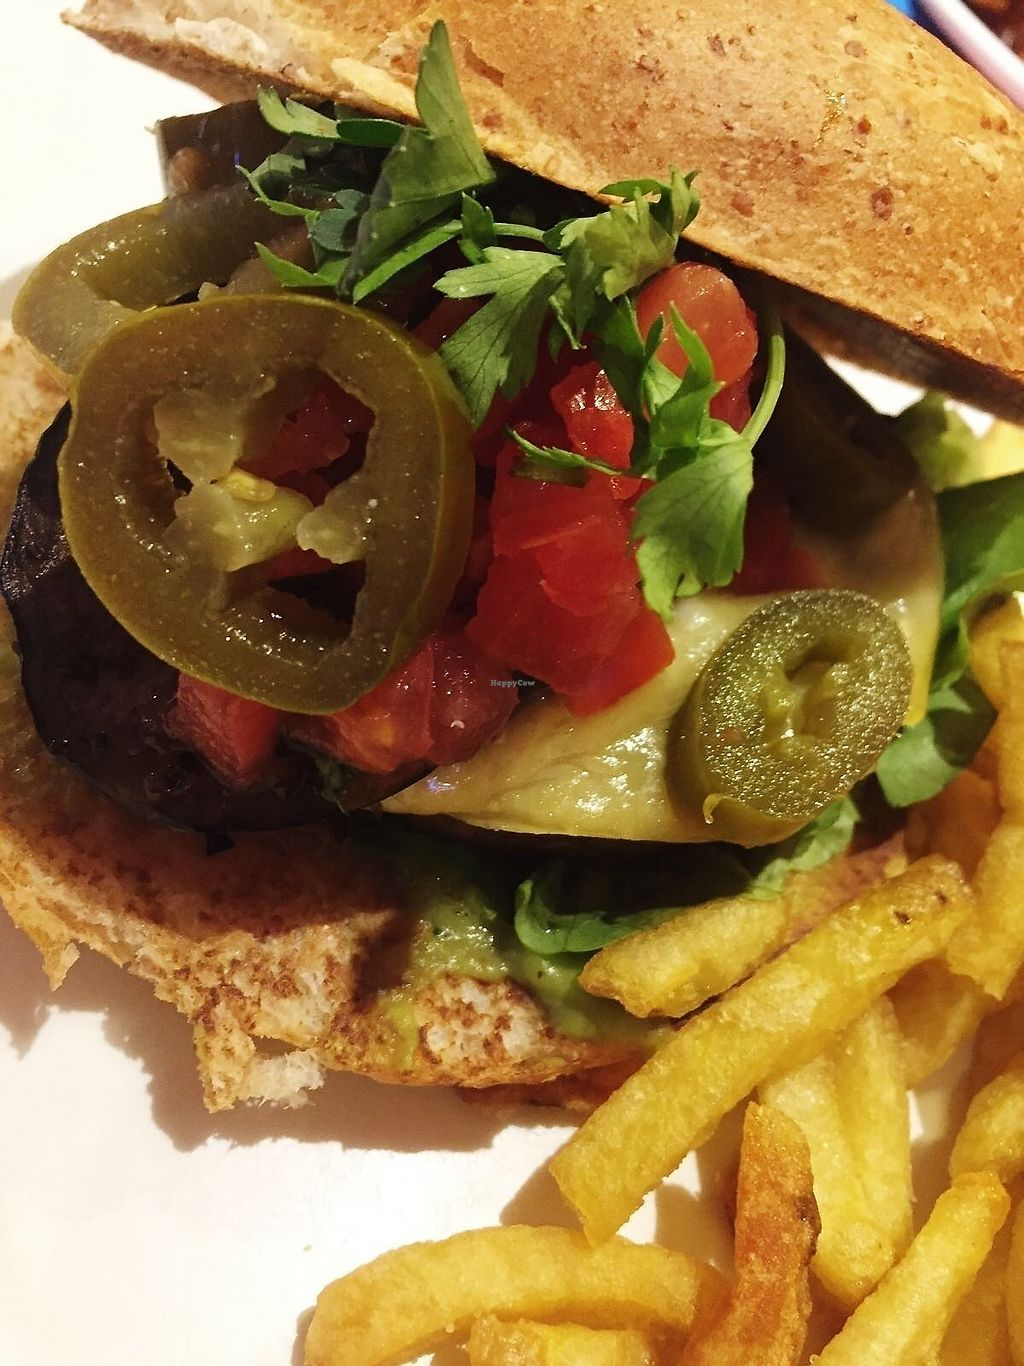 """Photo of HD Diner  by <a href=""""/members/profile/TARAMCDONALD"""">TARAMCDONALD</a> <br/>vegan burger with regular fries <br/> December 18, 2017  - <a href='/contact/abuse/image/103042/336685'>Report</a>"""